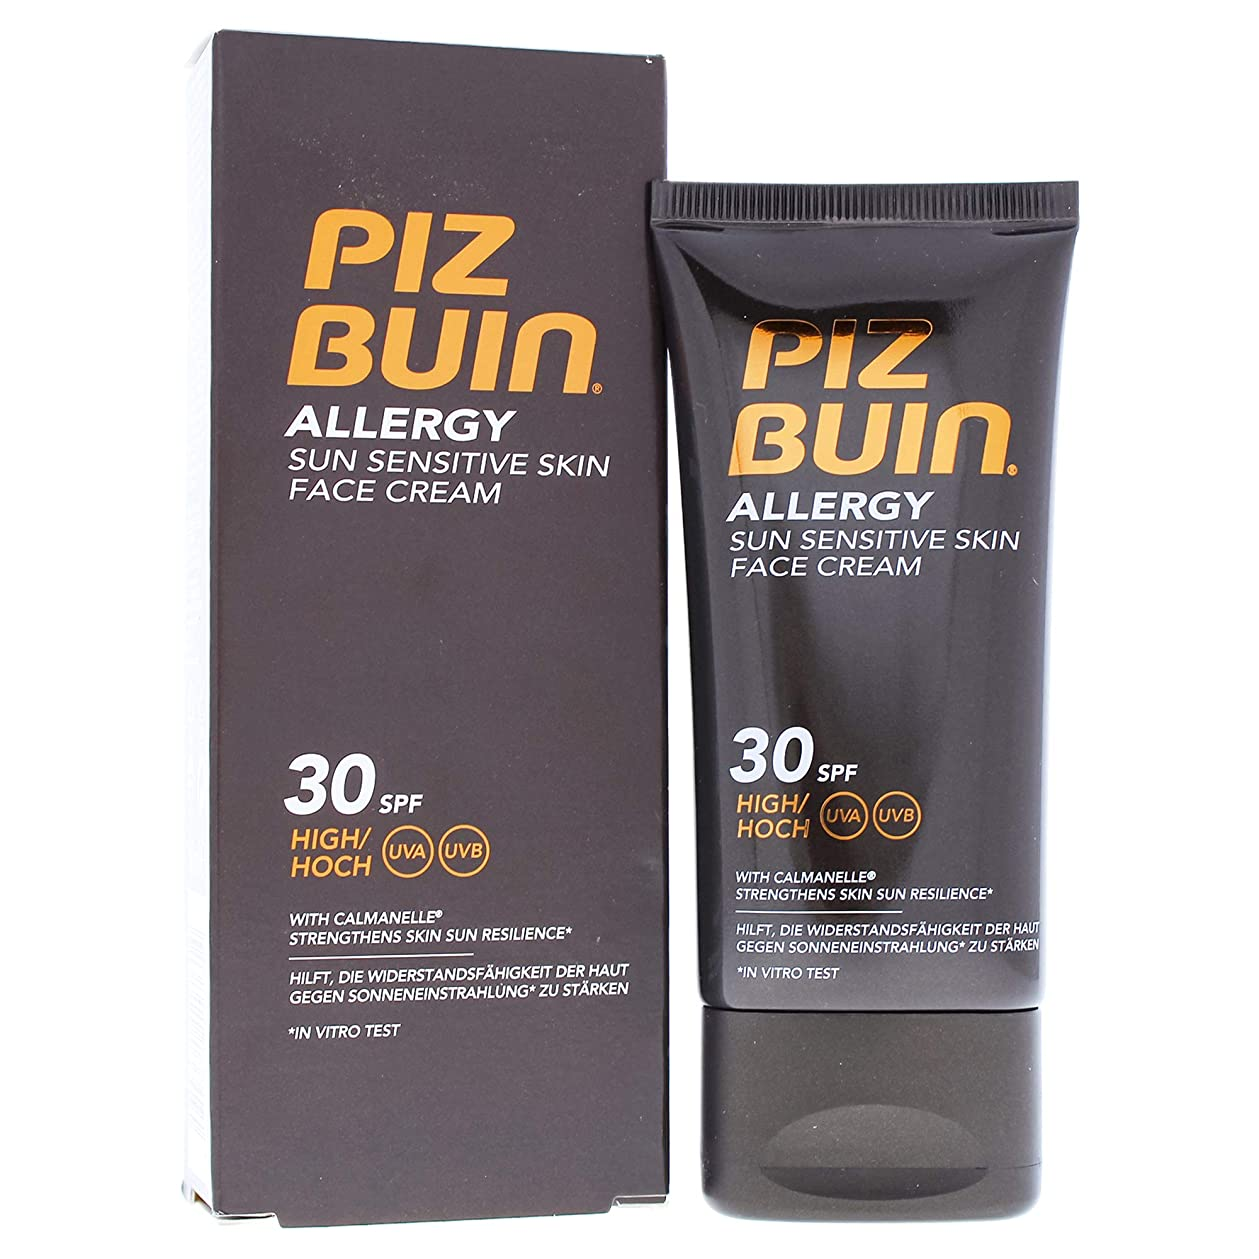 時間タオルコーナーPiz Buin Allergy Face Cream Spf30 50ml